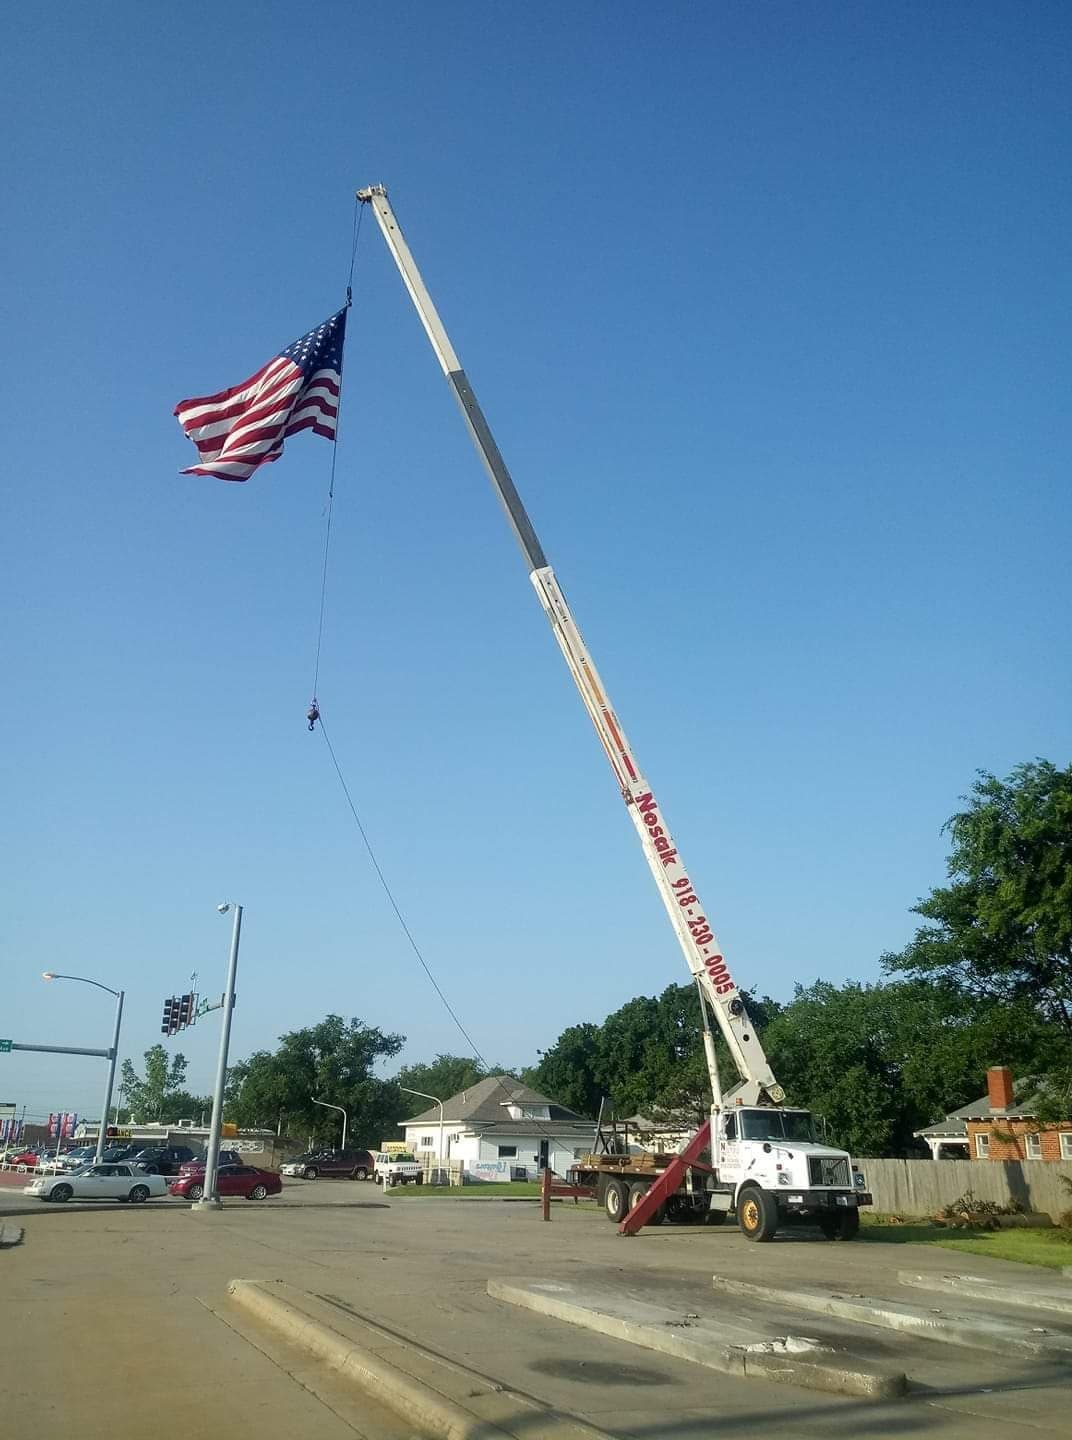 A crane holds a large American flag near intersection of Mission and Line Streets as a symbol for the community spirit that happened after the tornadoes struck Sapulpa Memorial Day Weekend.